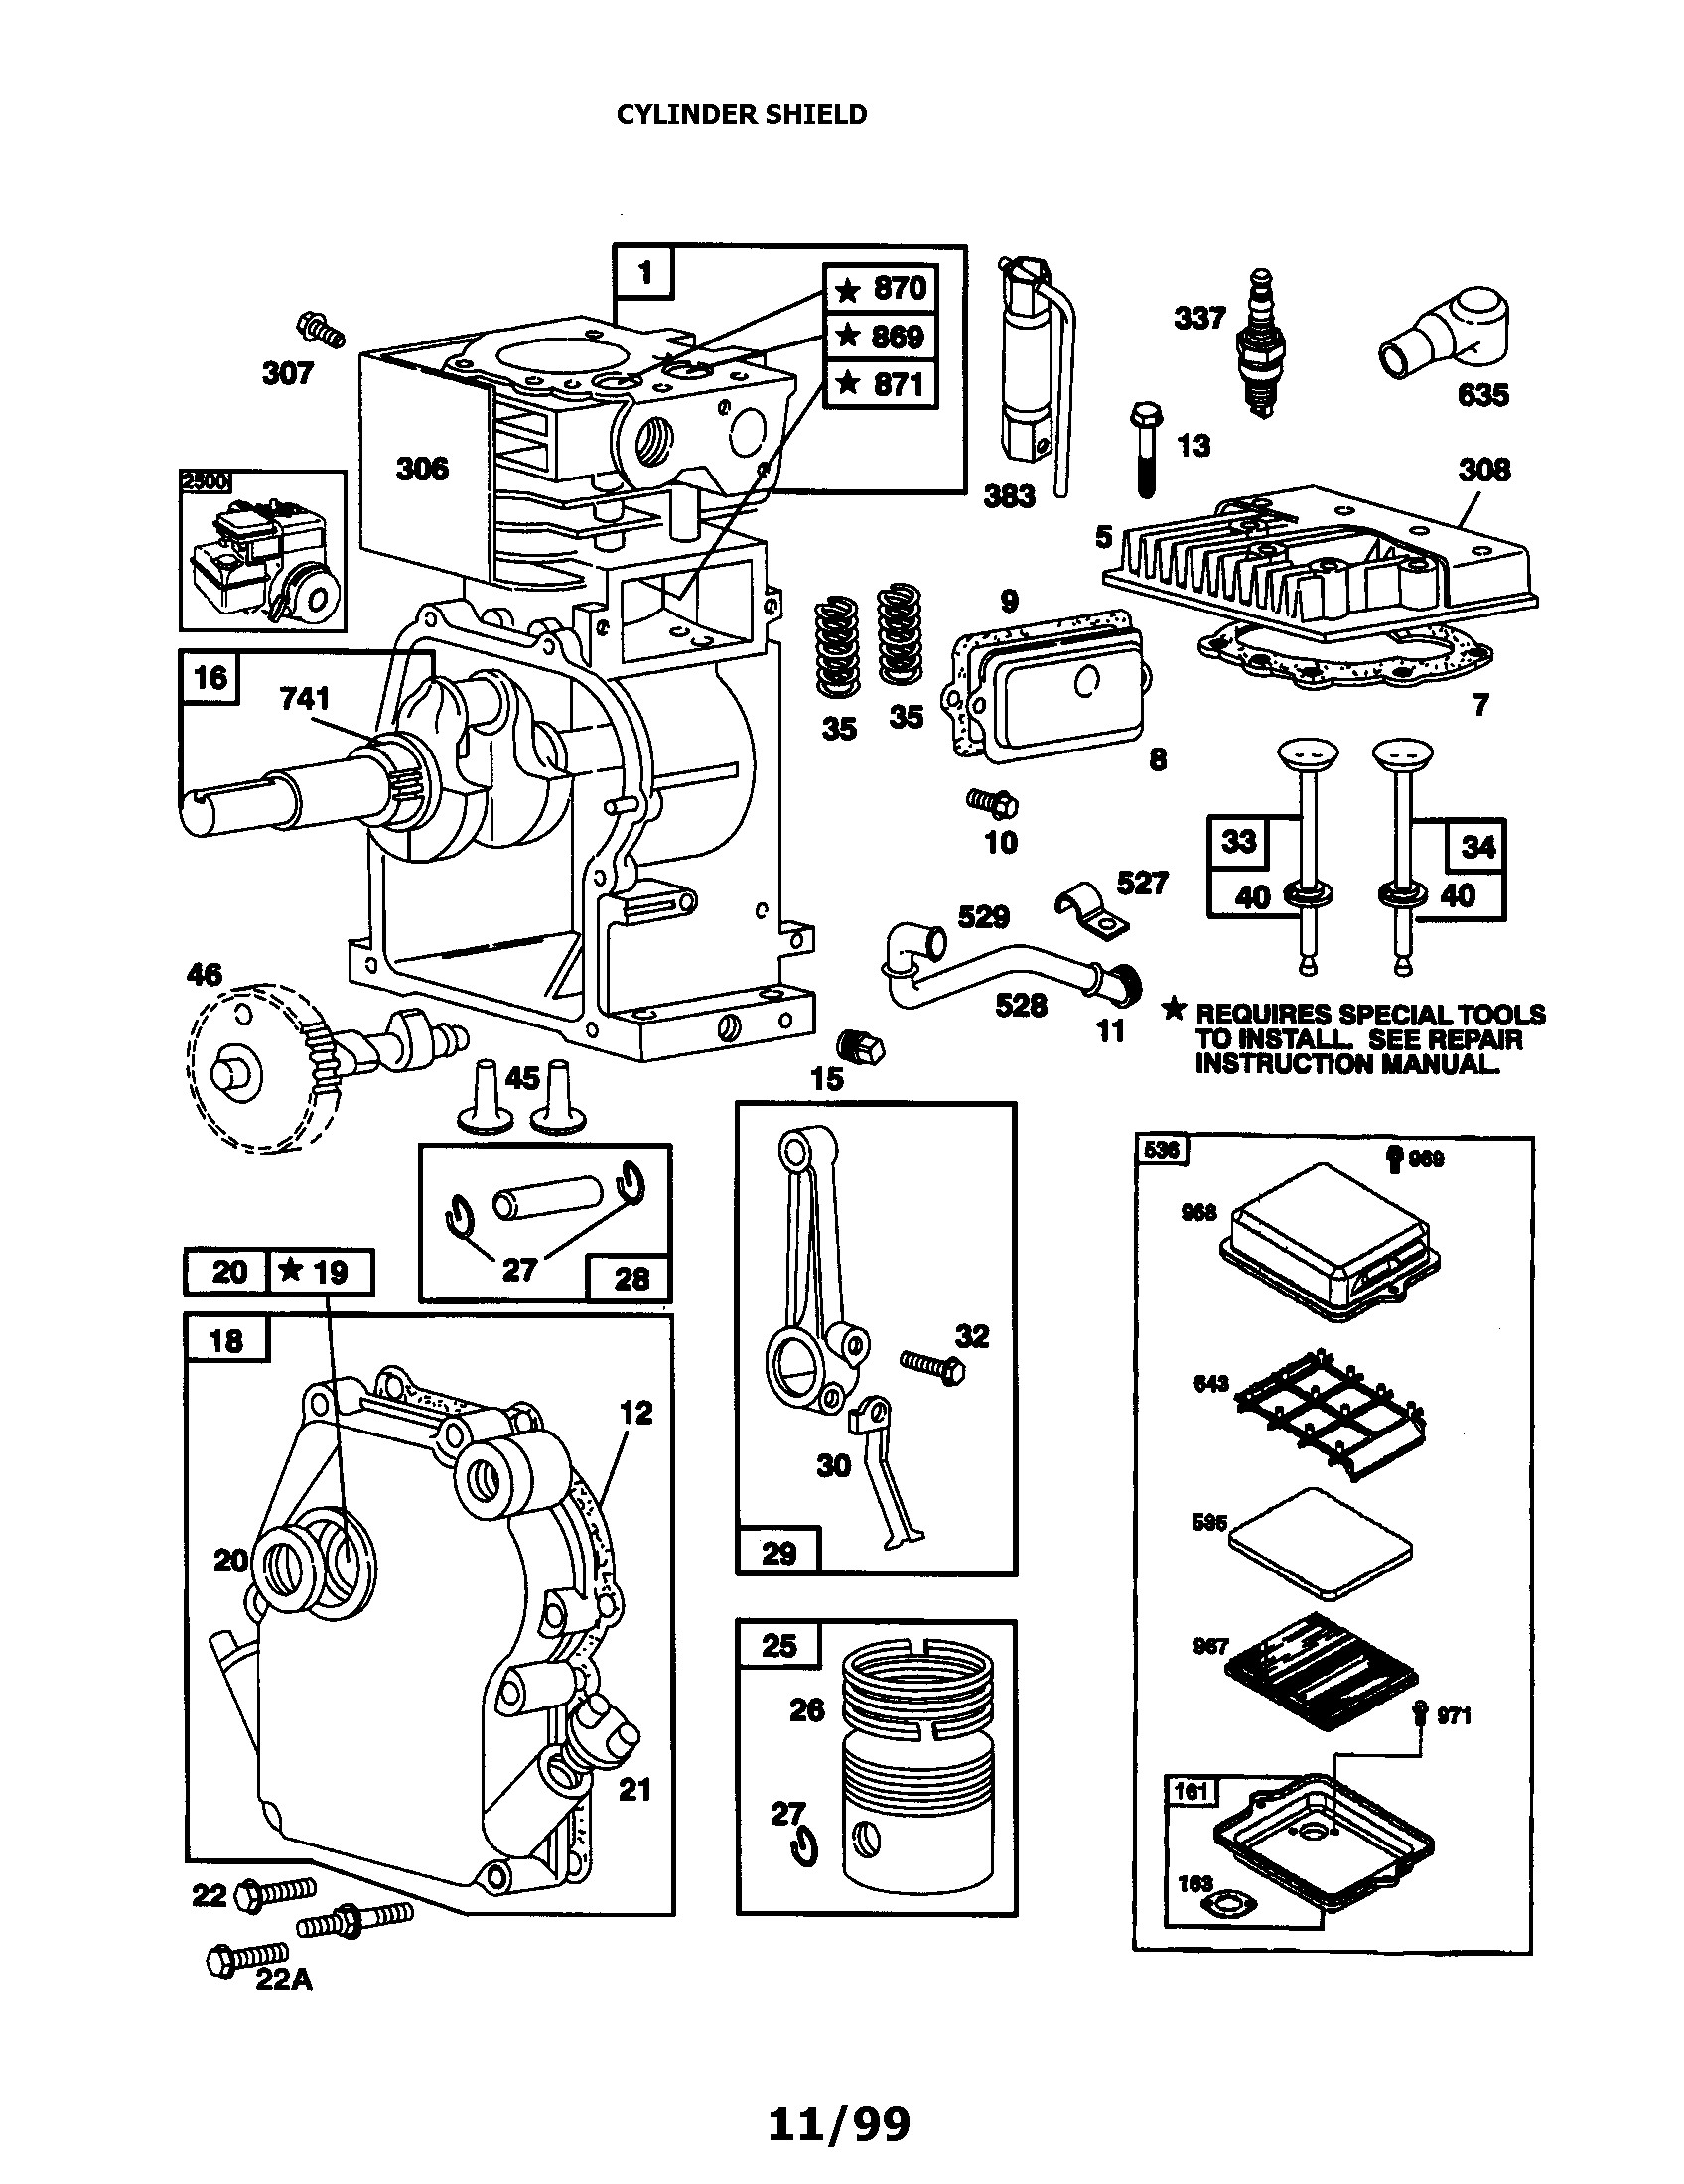 honda eu2000 parts diagram